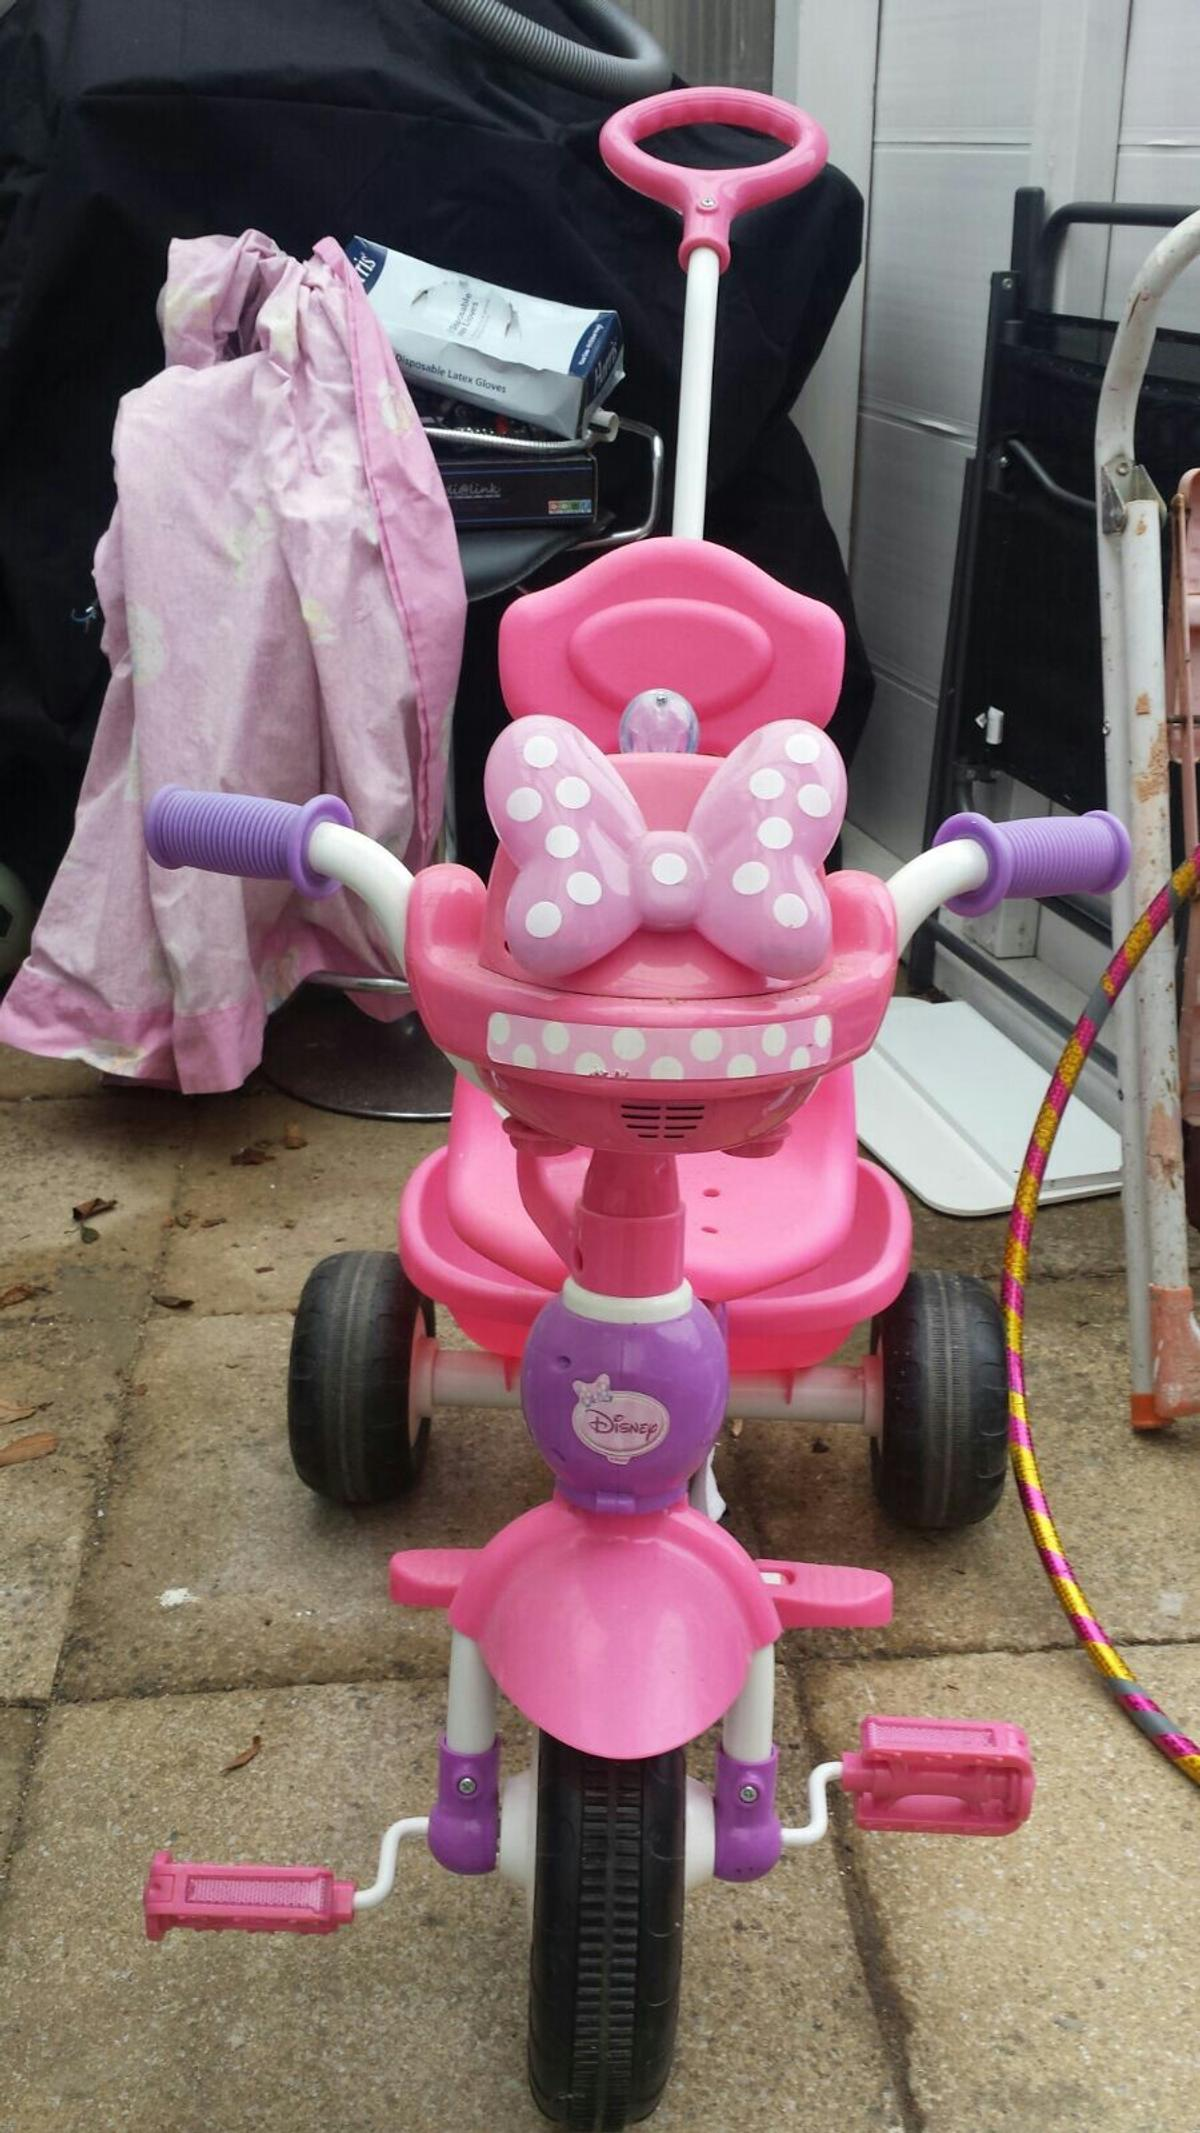 789a03f1043 Disney Minnie Mouse Push N' Ride Trike in Britwell for £20.00 for ...